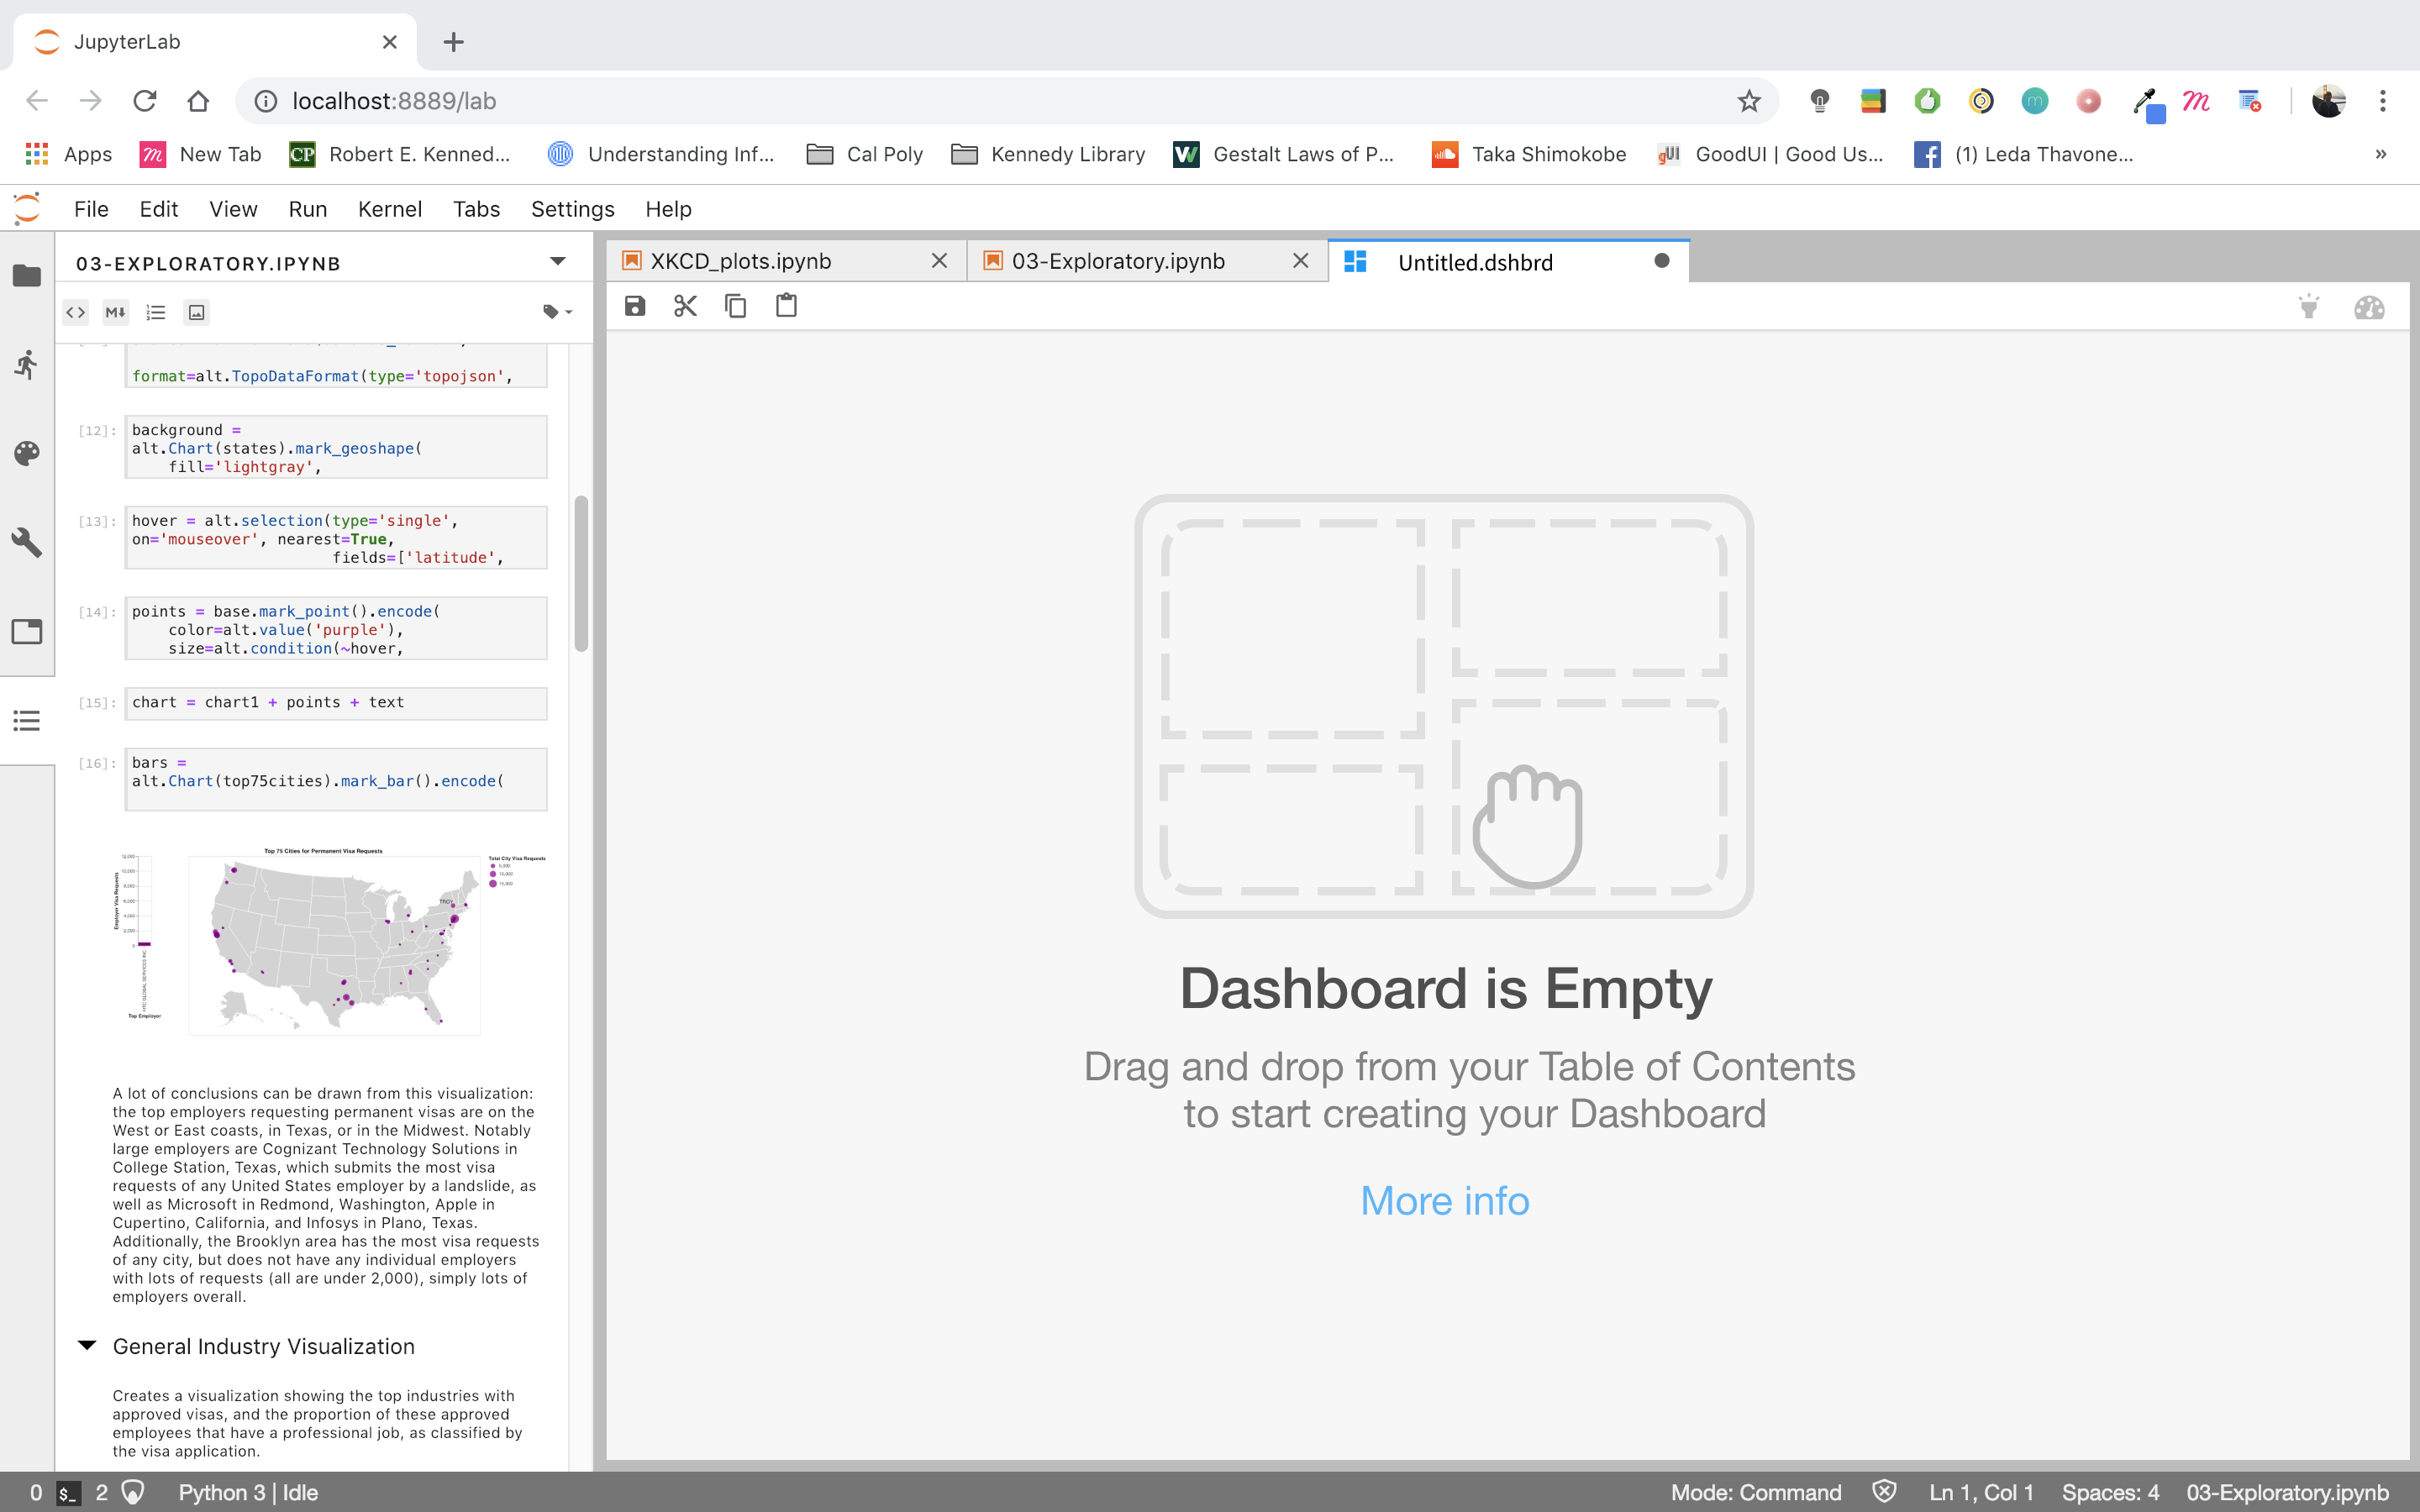 dashboard created - empty state